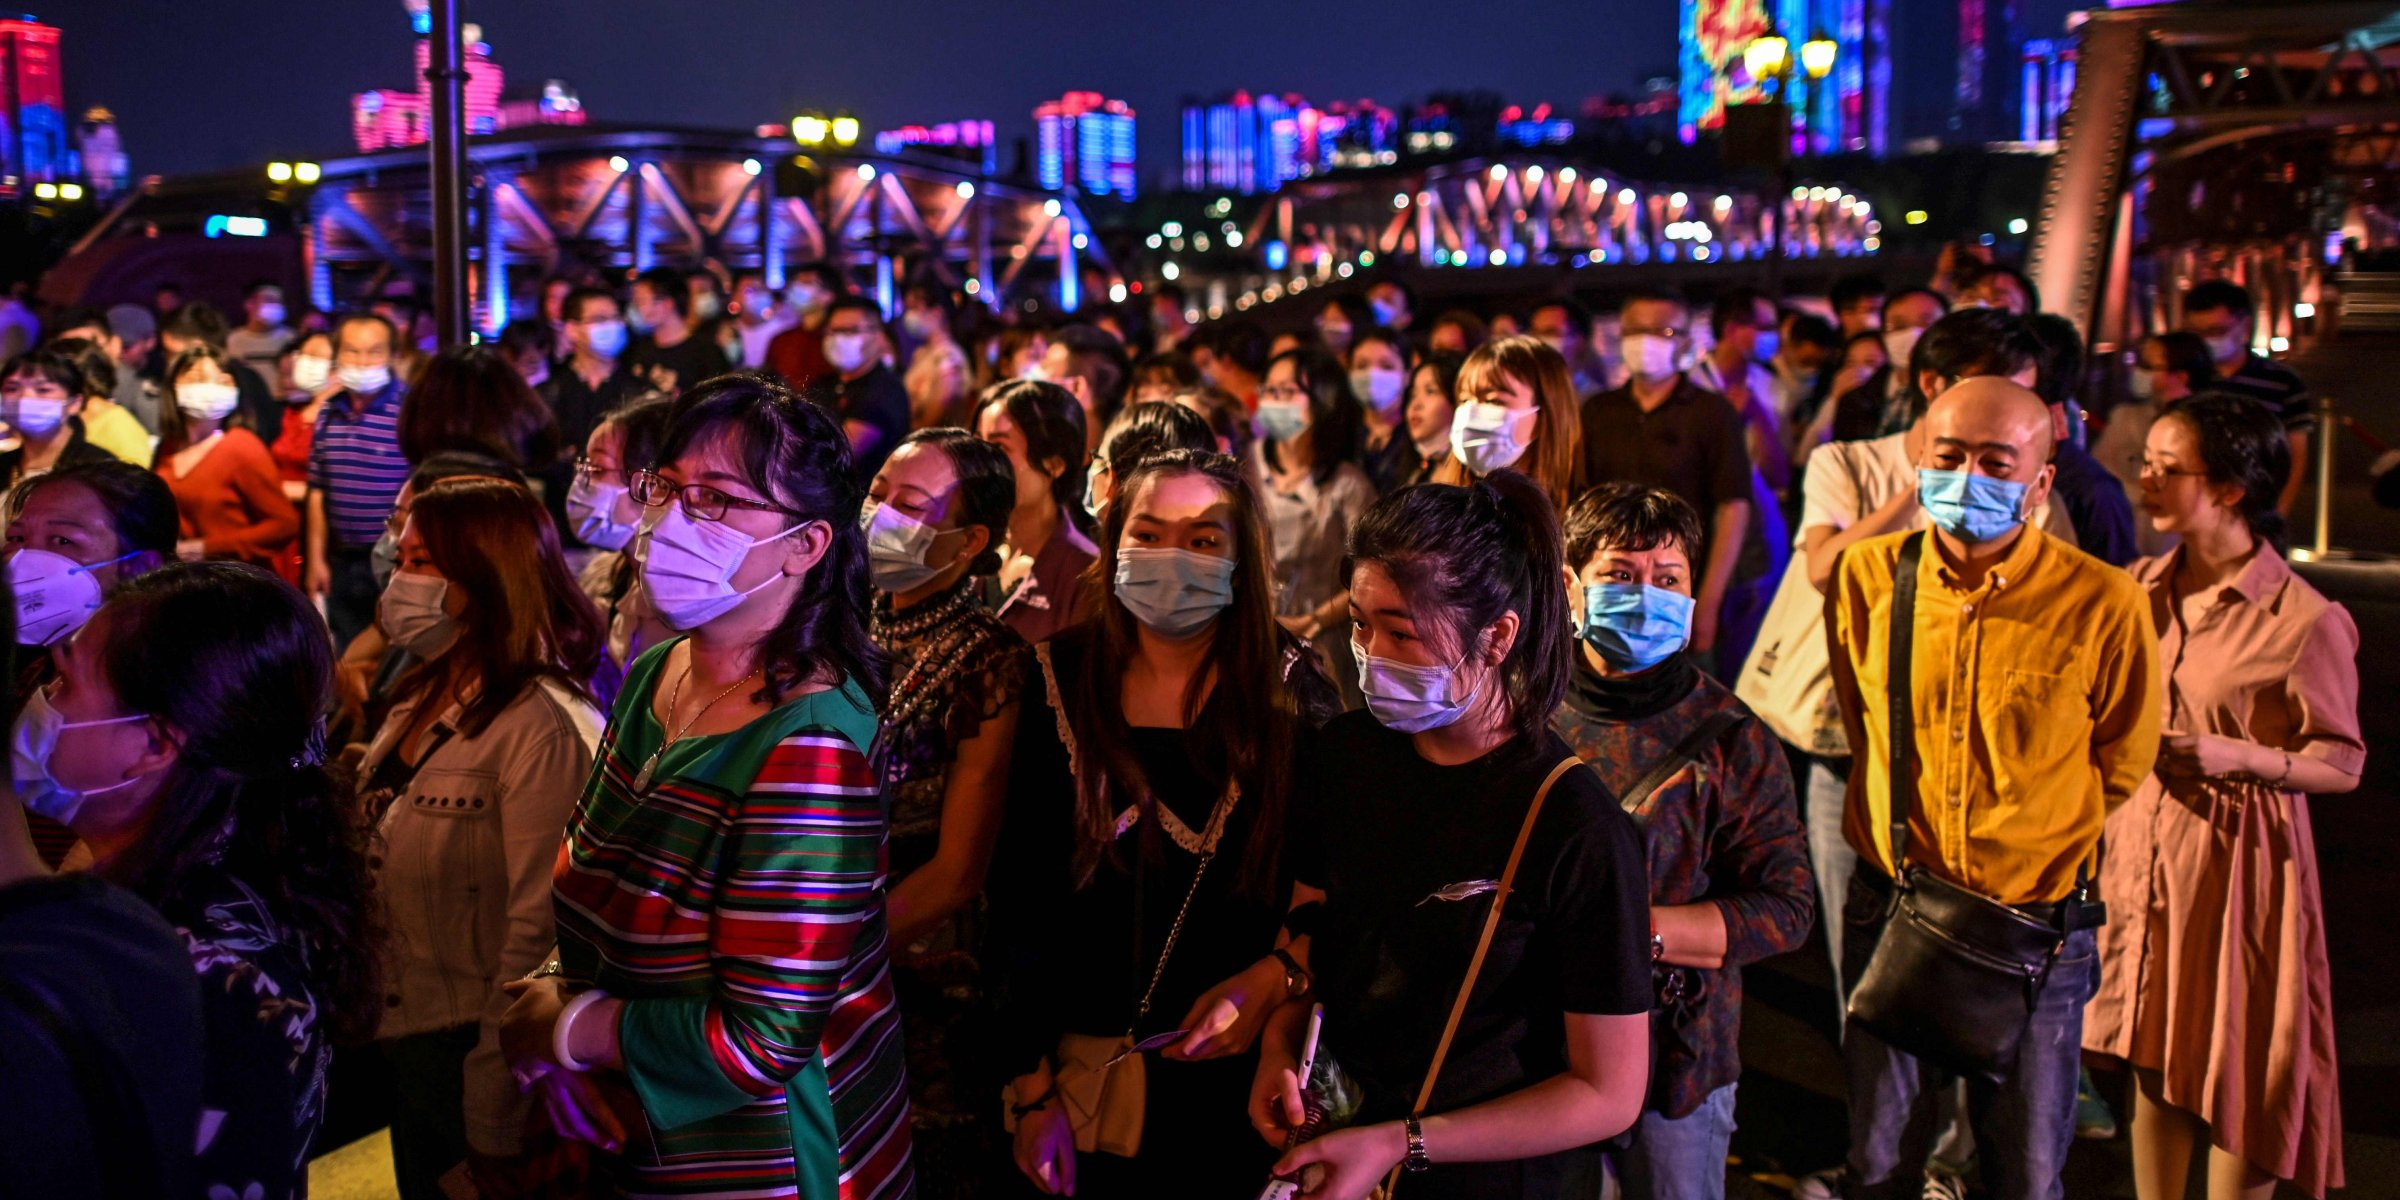 China's lack of transparency is creating 'anti-Sinopathy'